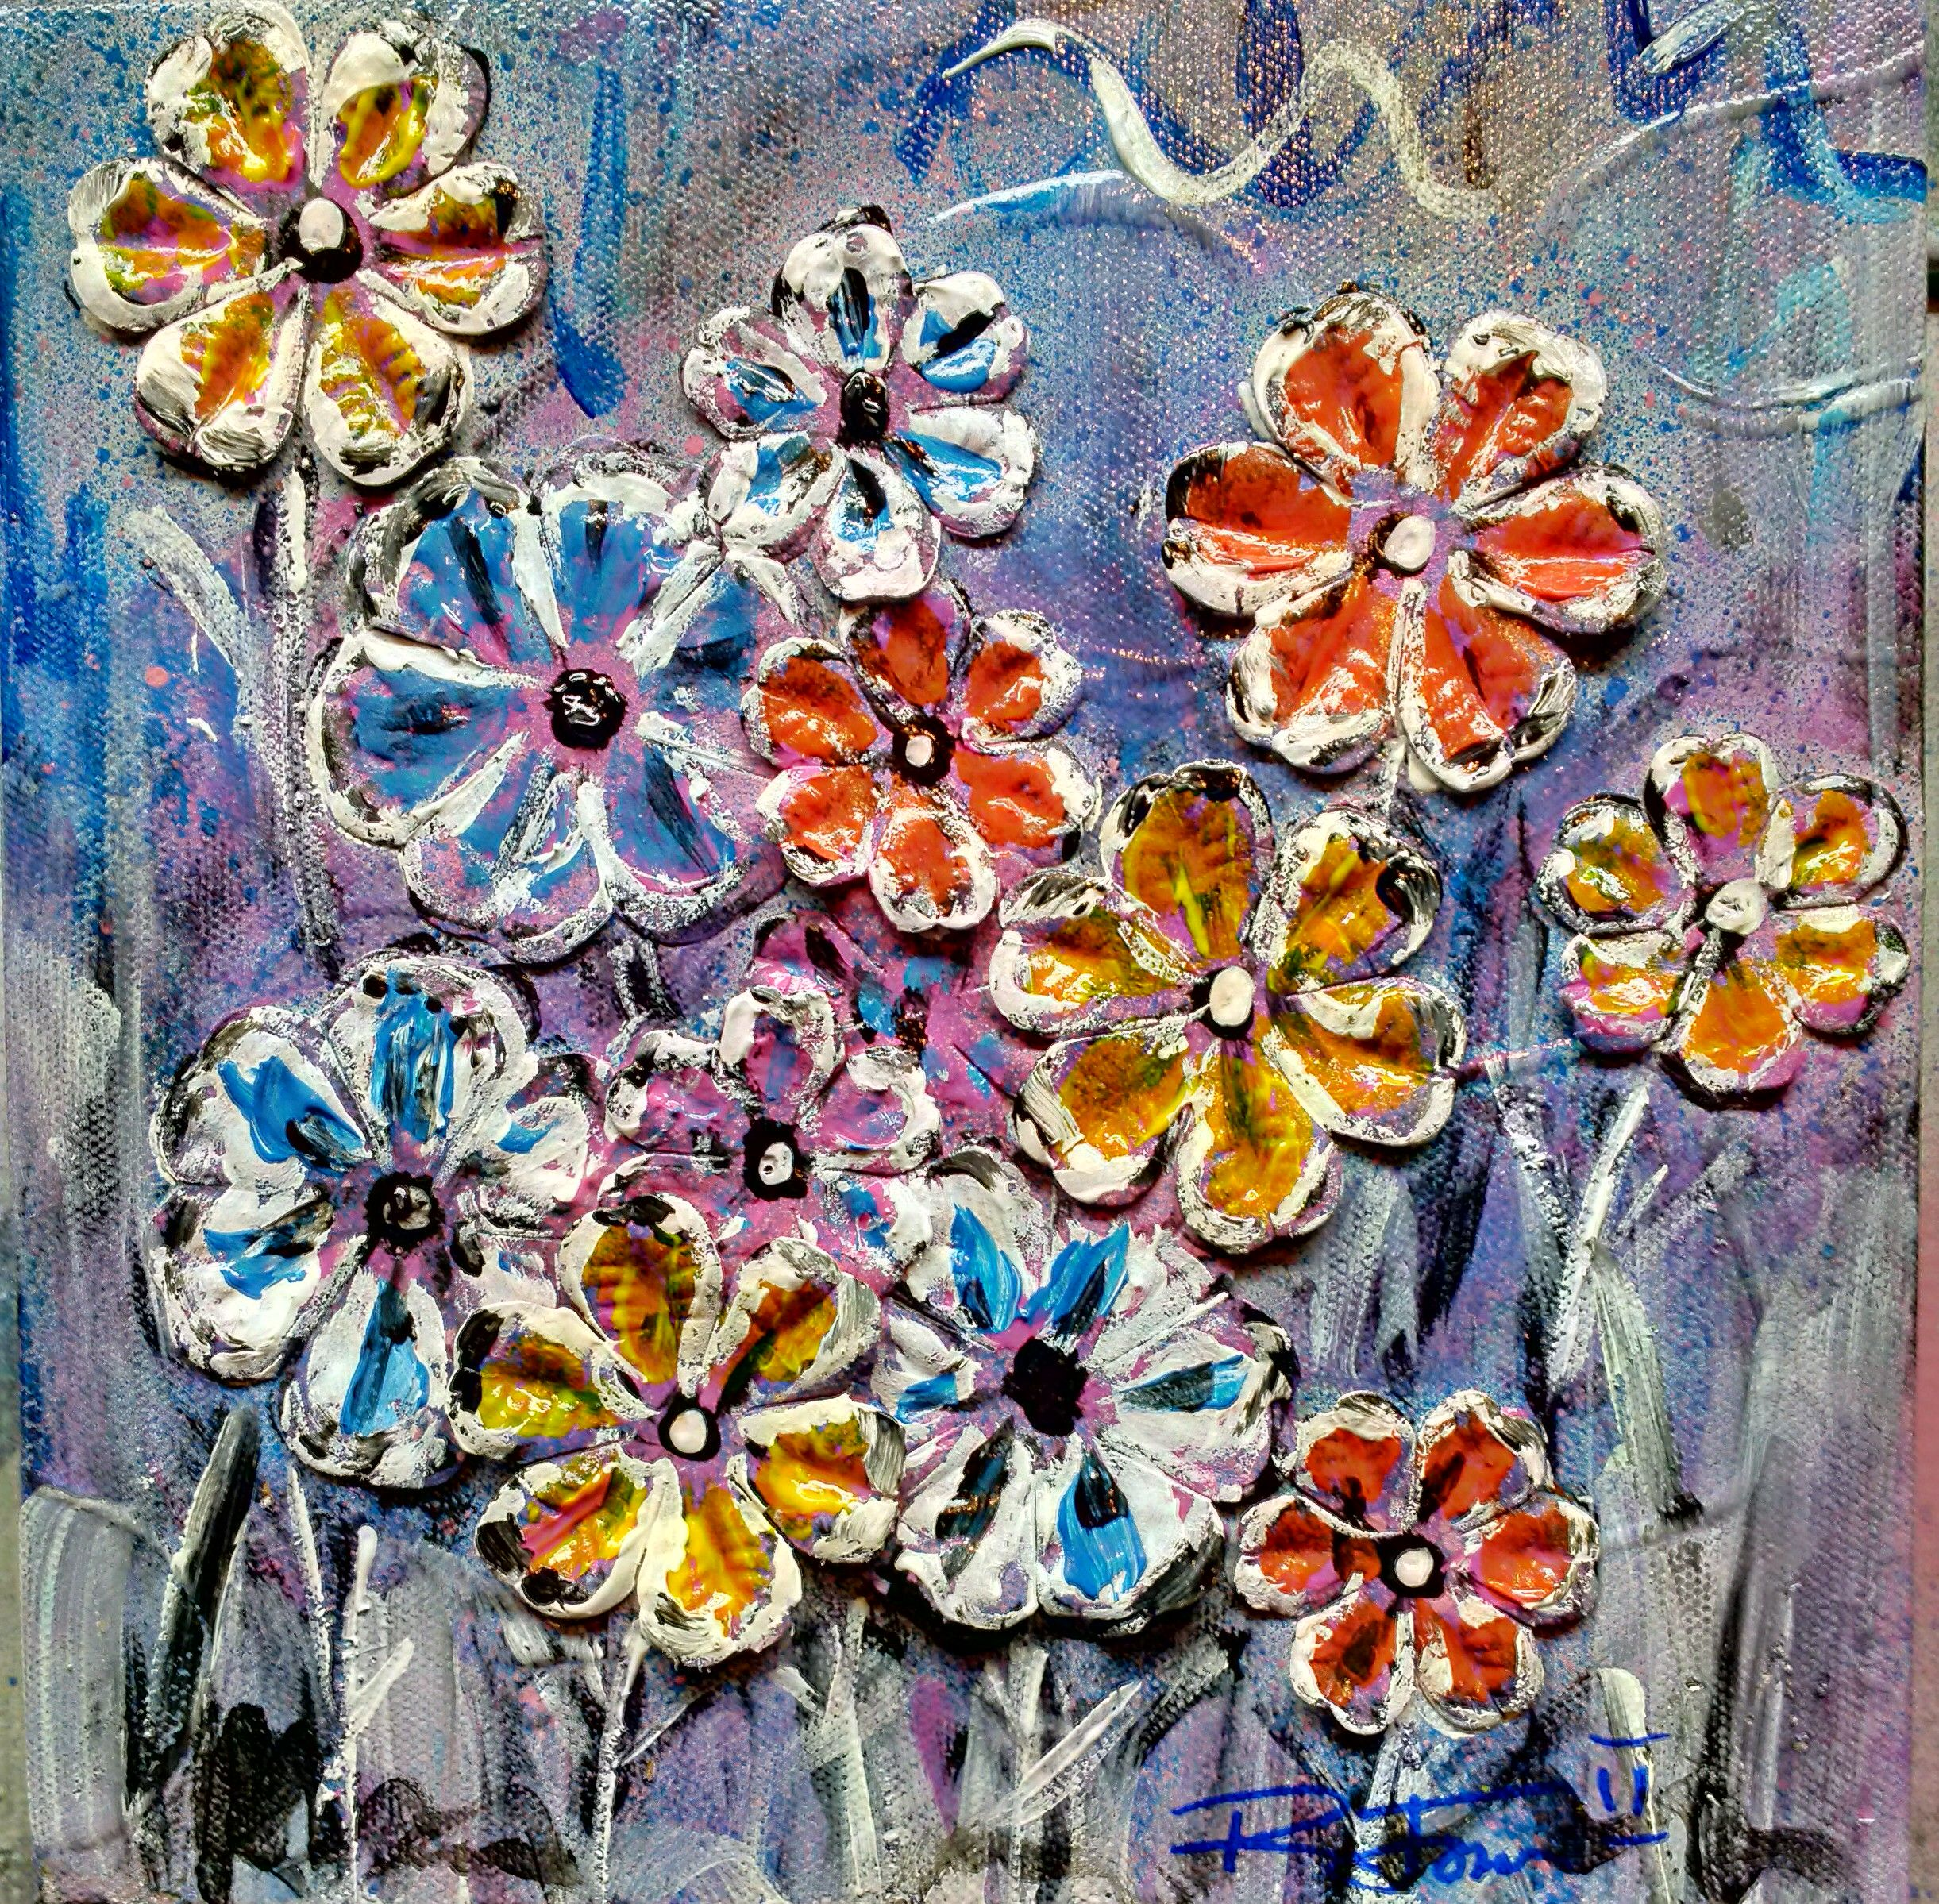 Mixed media with acrylic paint on a small canvass Flower